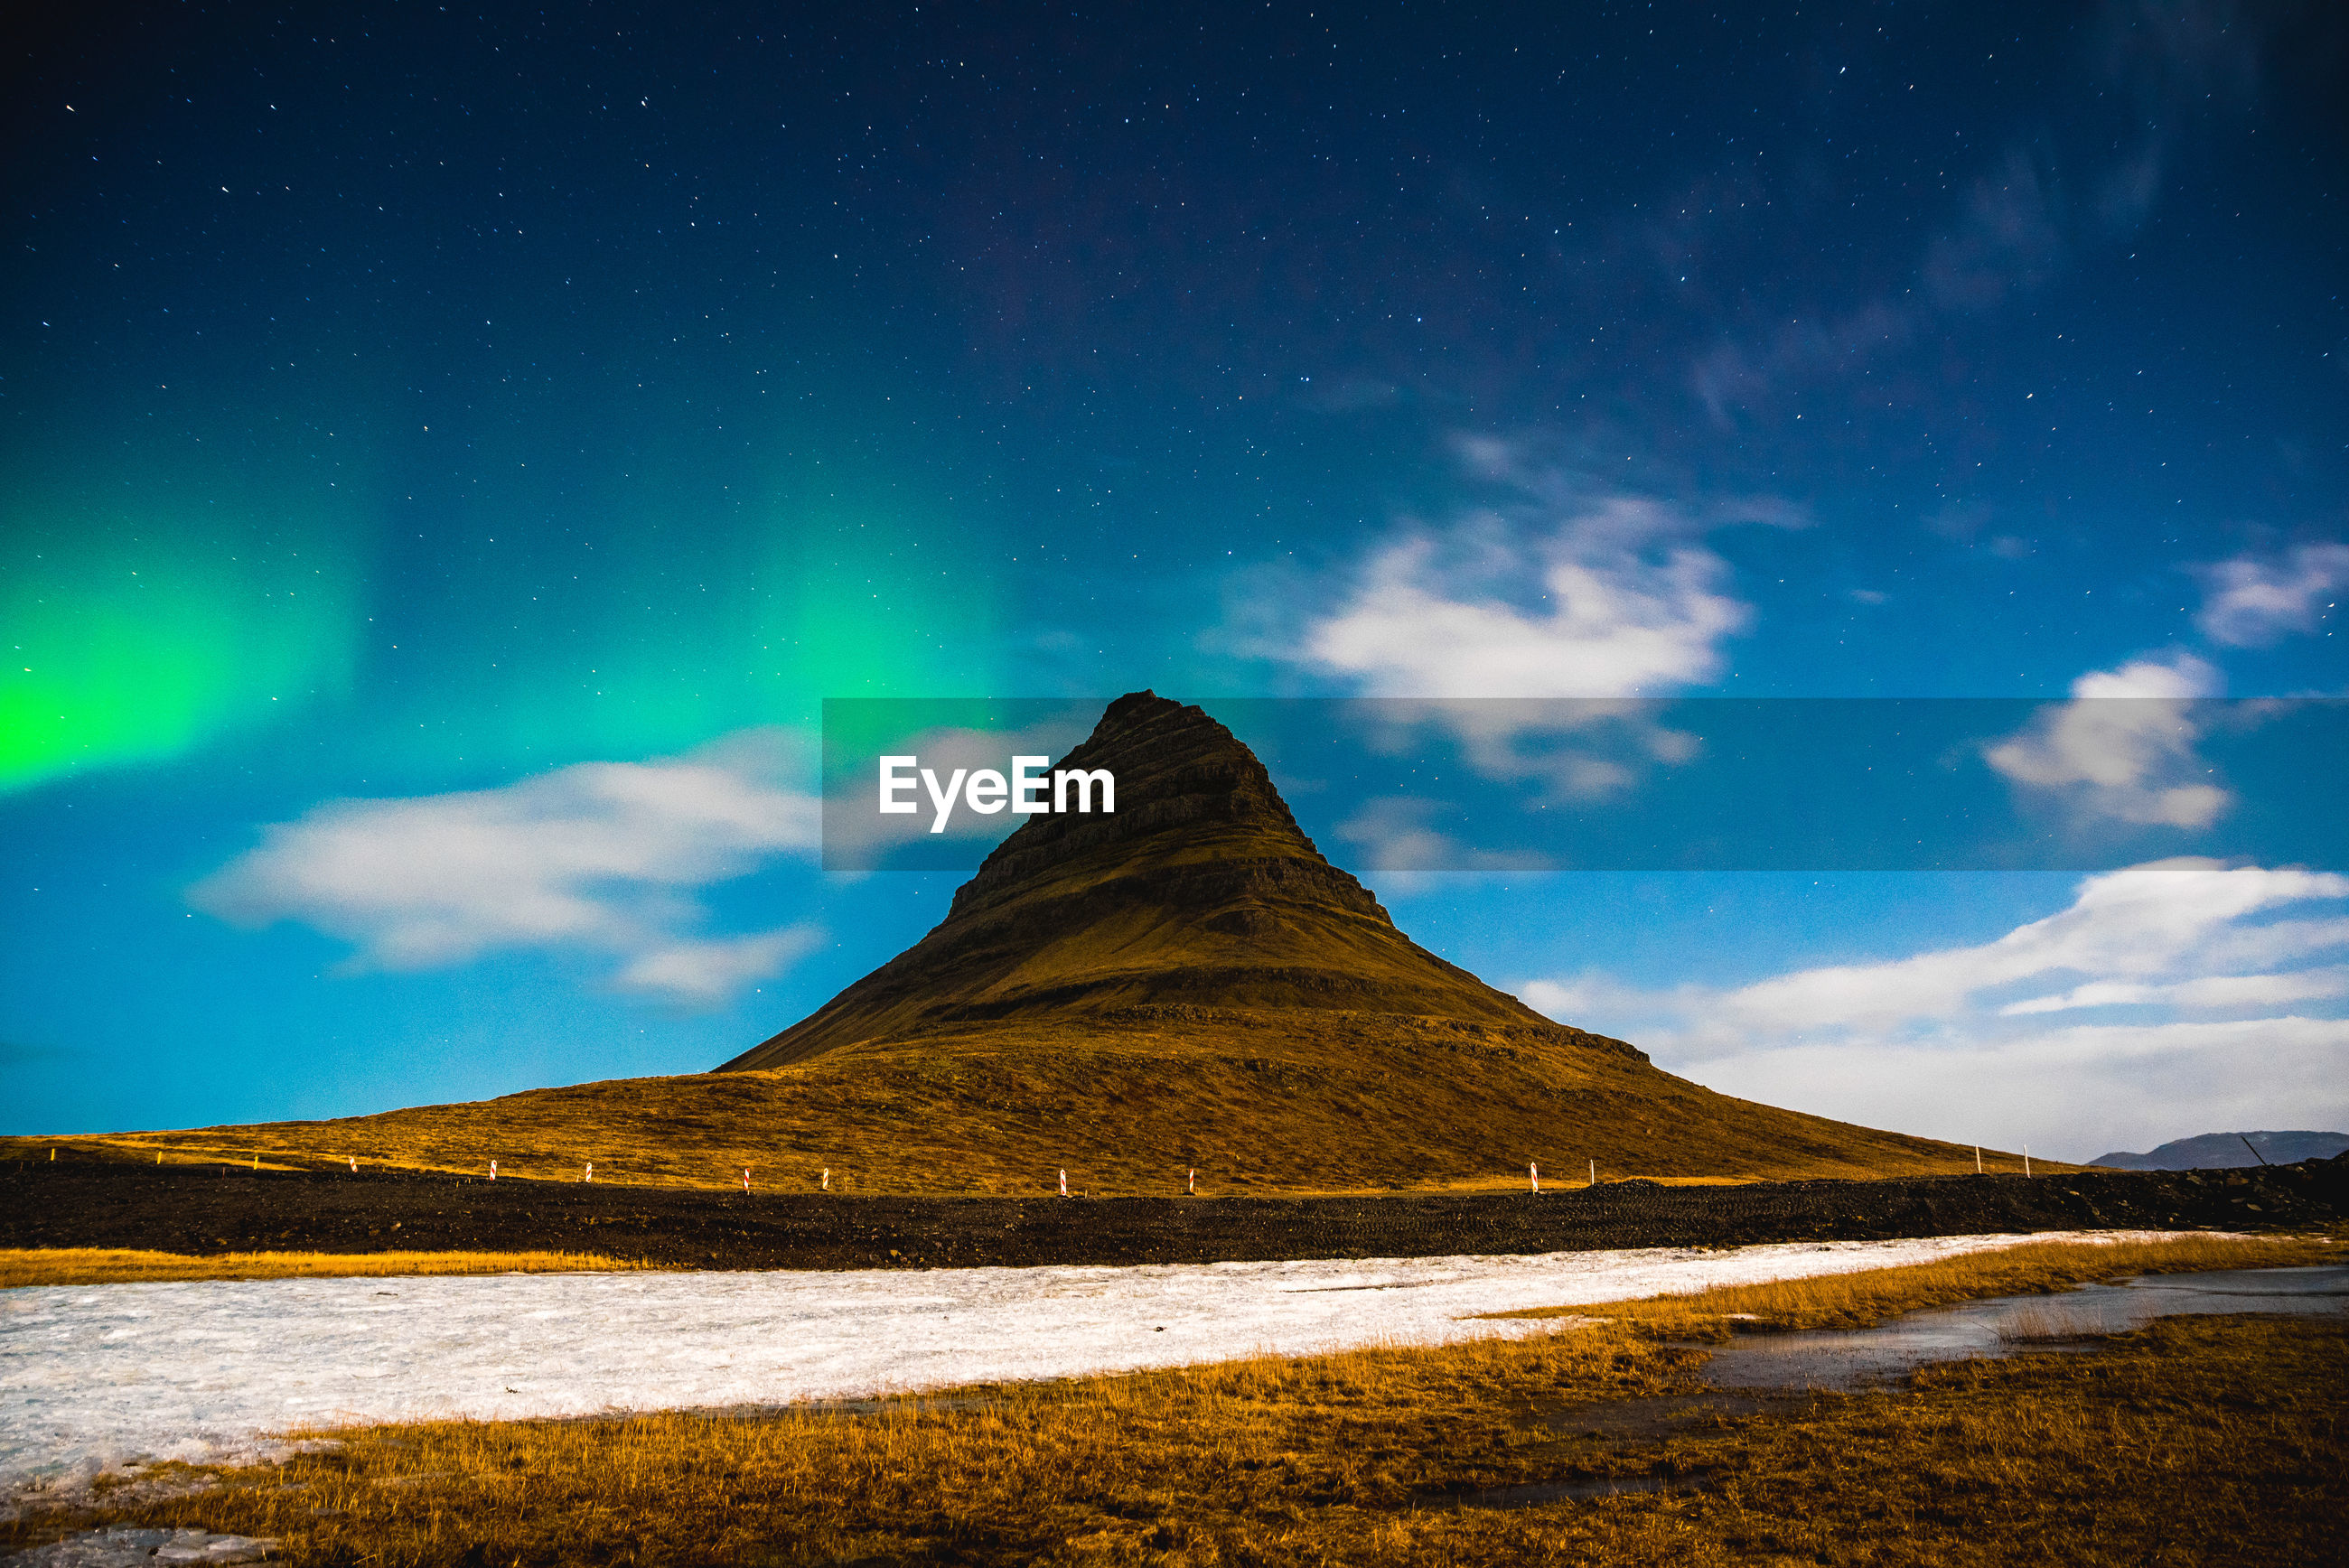 Scenic view of kirkjufell mountain against night sky with aurora borealis